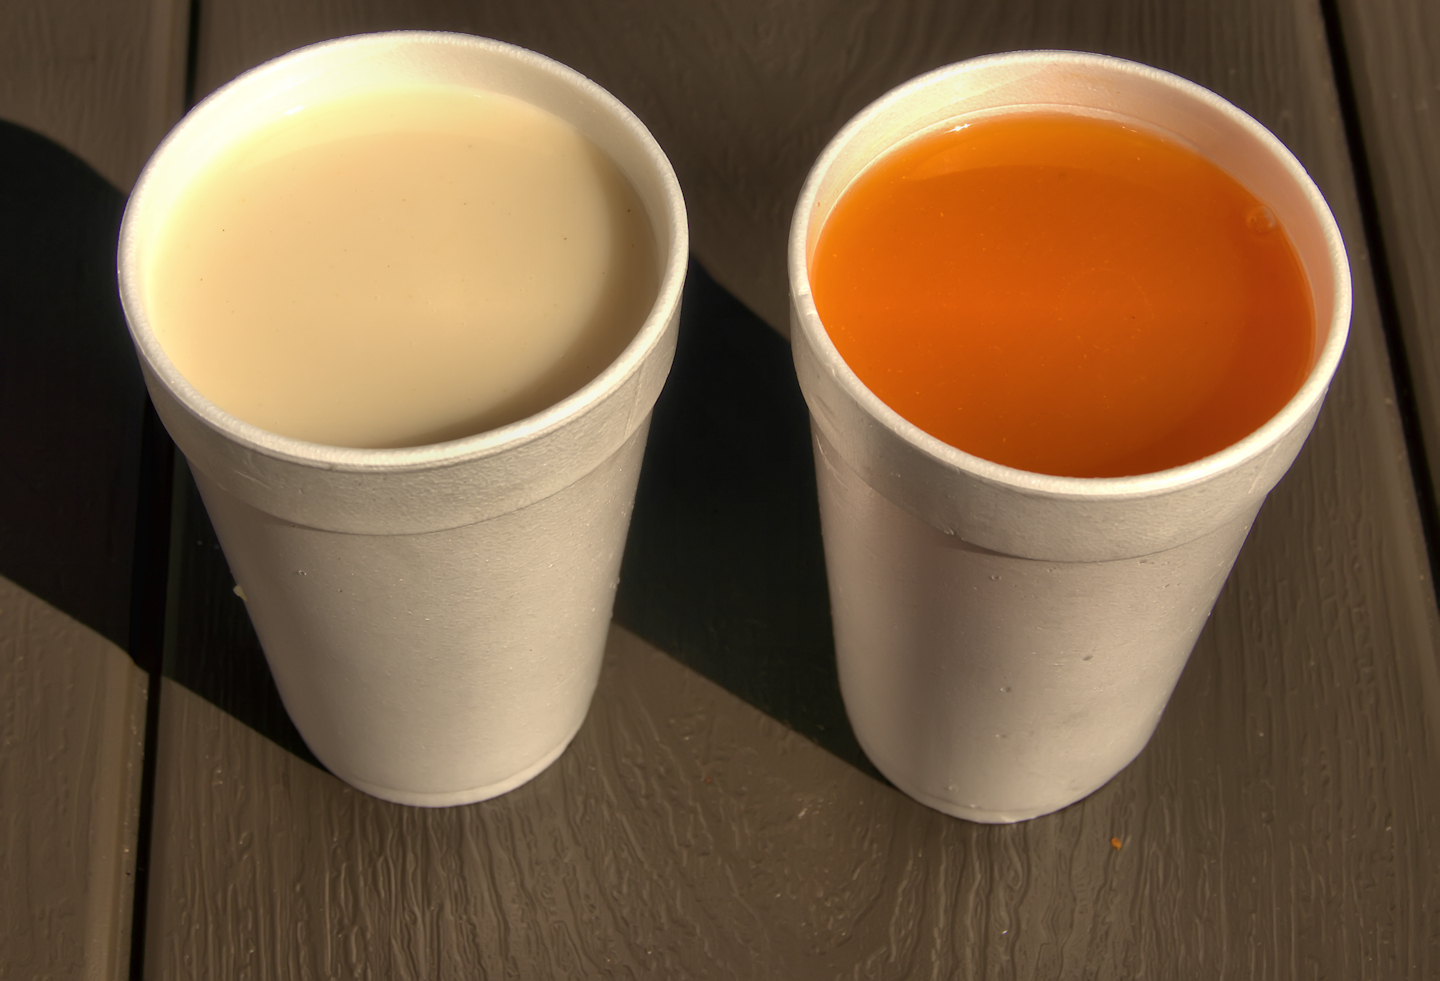 Komosol-and-grenadin-left-and-right-fruit-drinks